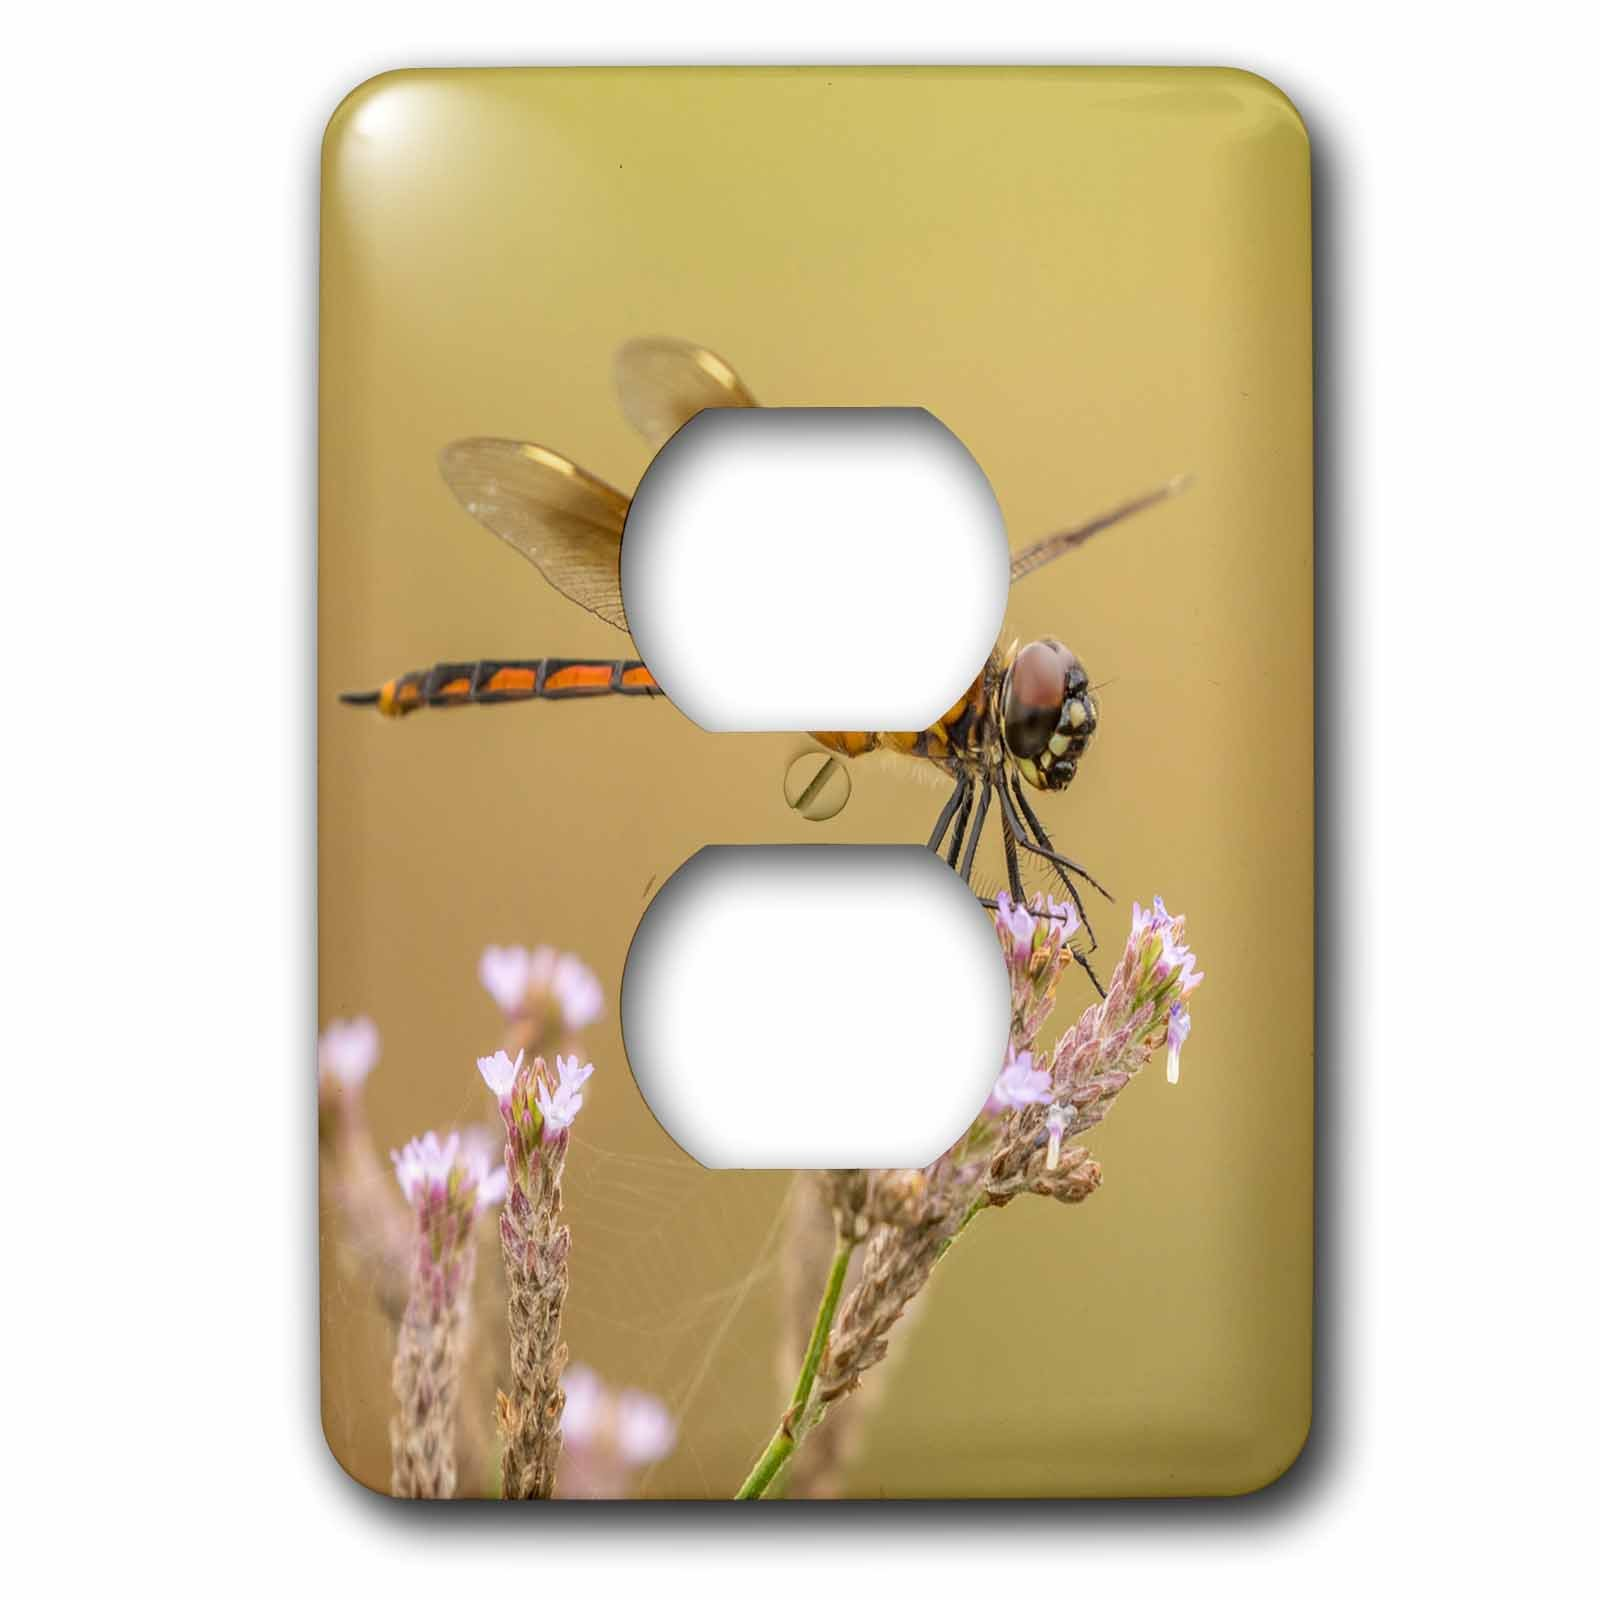 3dRose Danita Delimont - Insects - USA, Louisiana, Millers Lake. Dragonfly on flower. - Light Switch Covers - 2 plug outlet cover (lsp_259372_6) by 3dRose